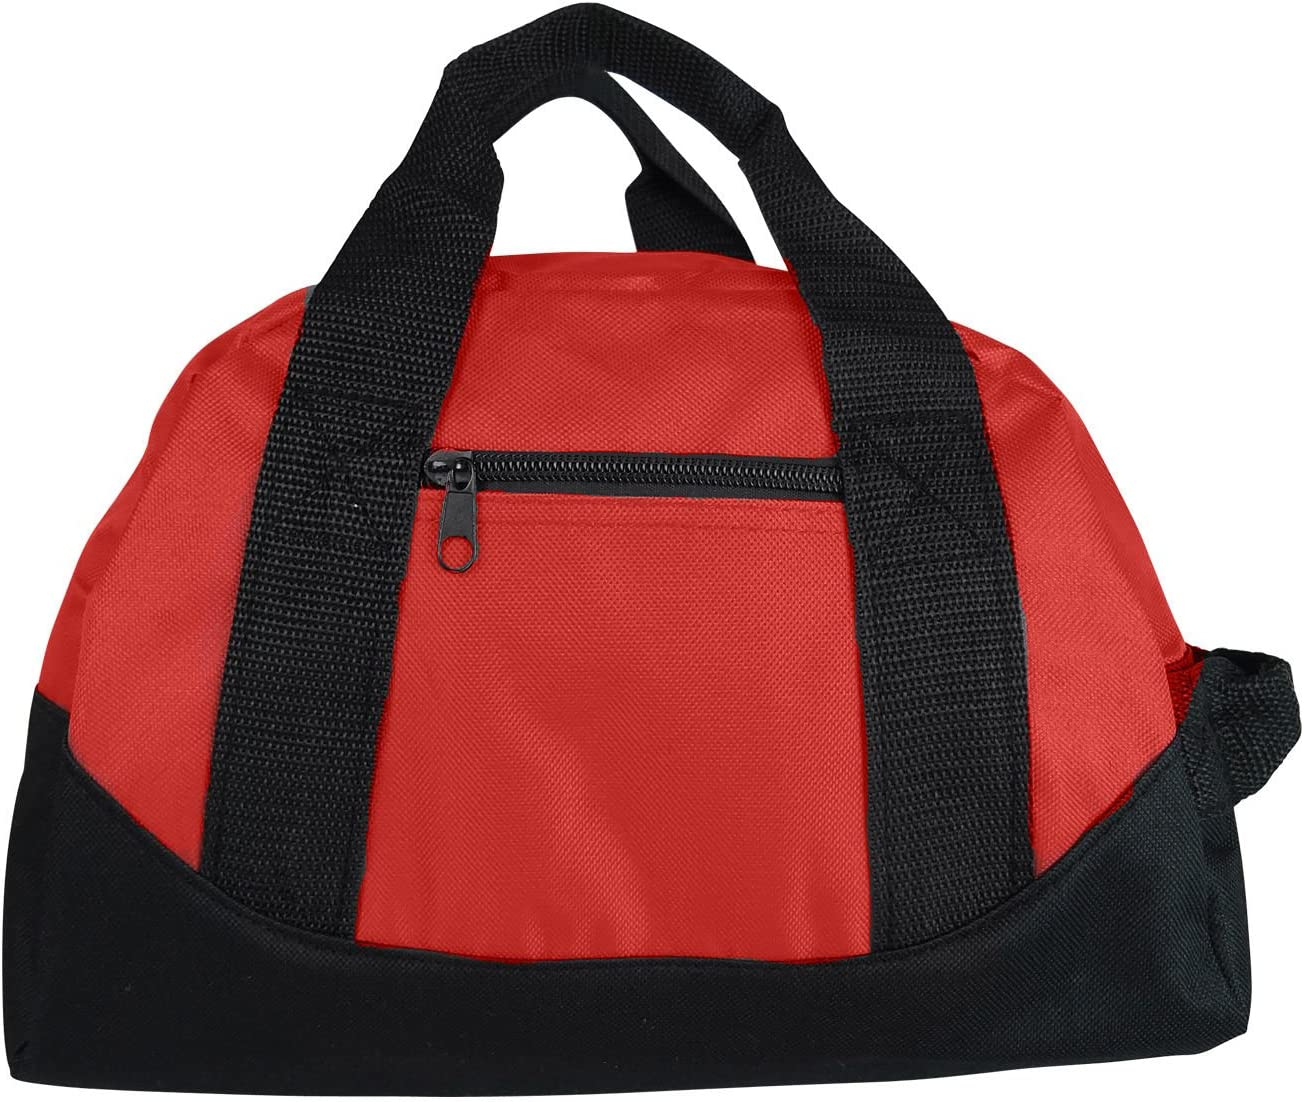 Teamoy Sports Duffle Bag Foldable Travel Luggage Sports Gym Bag for Women and Men